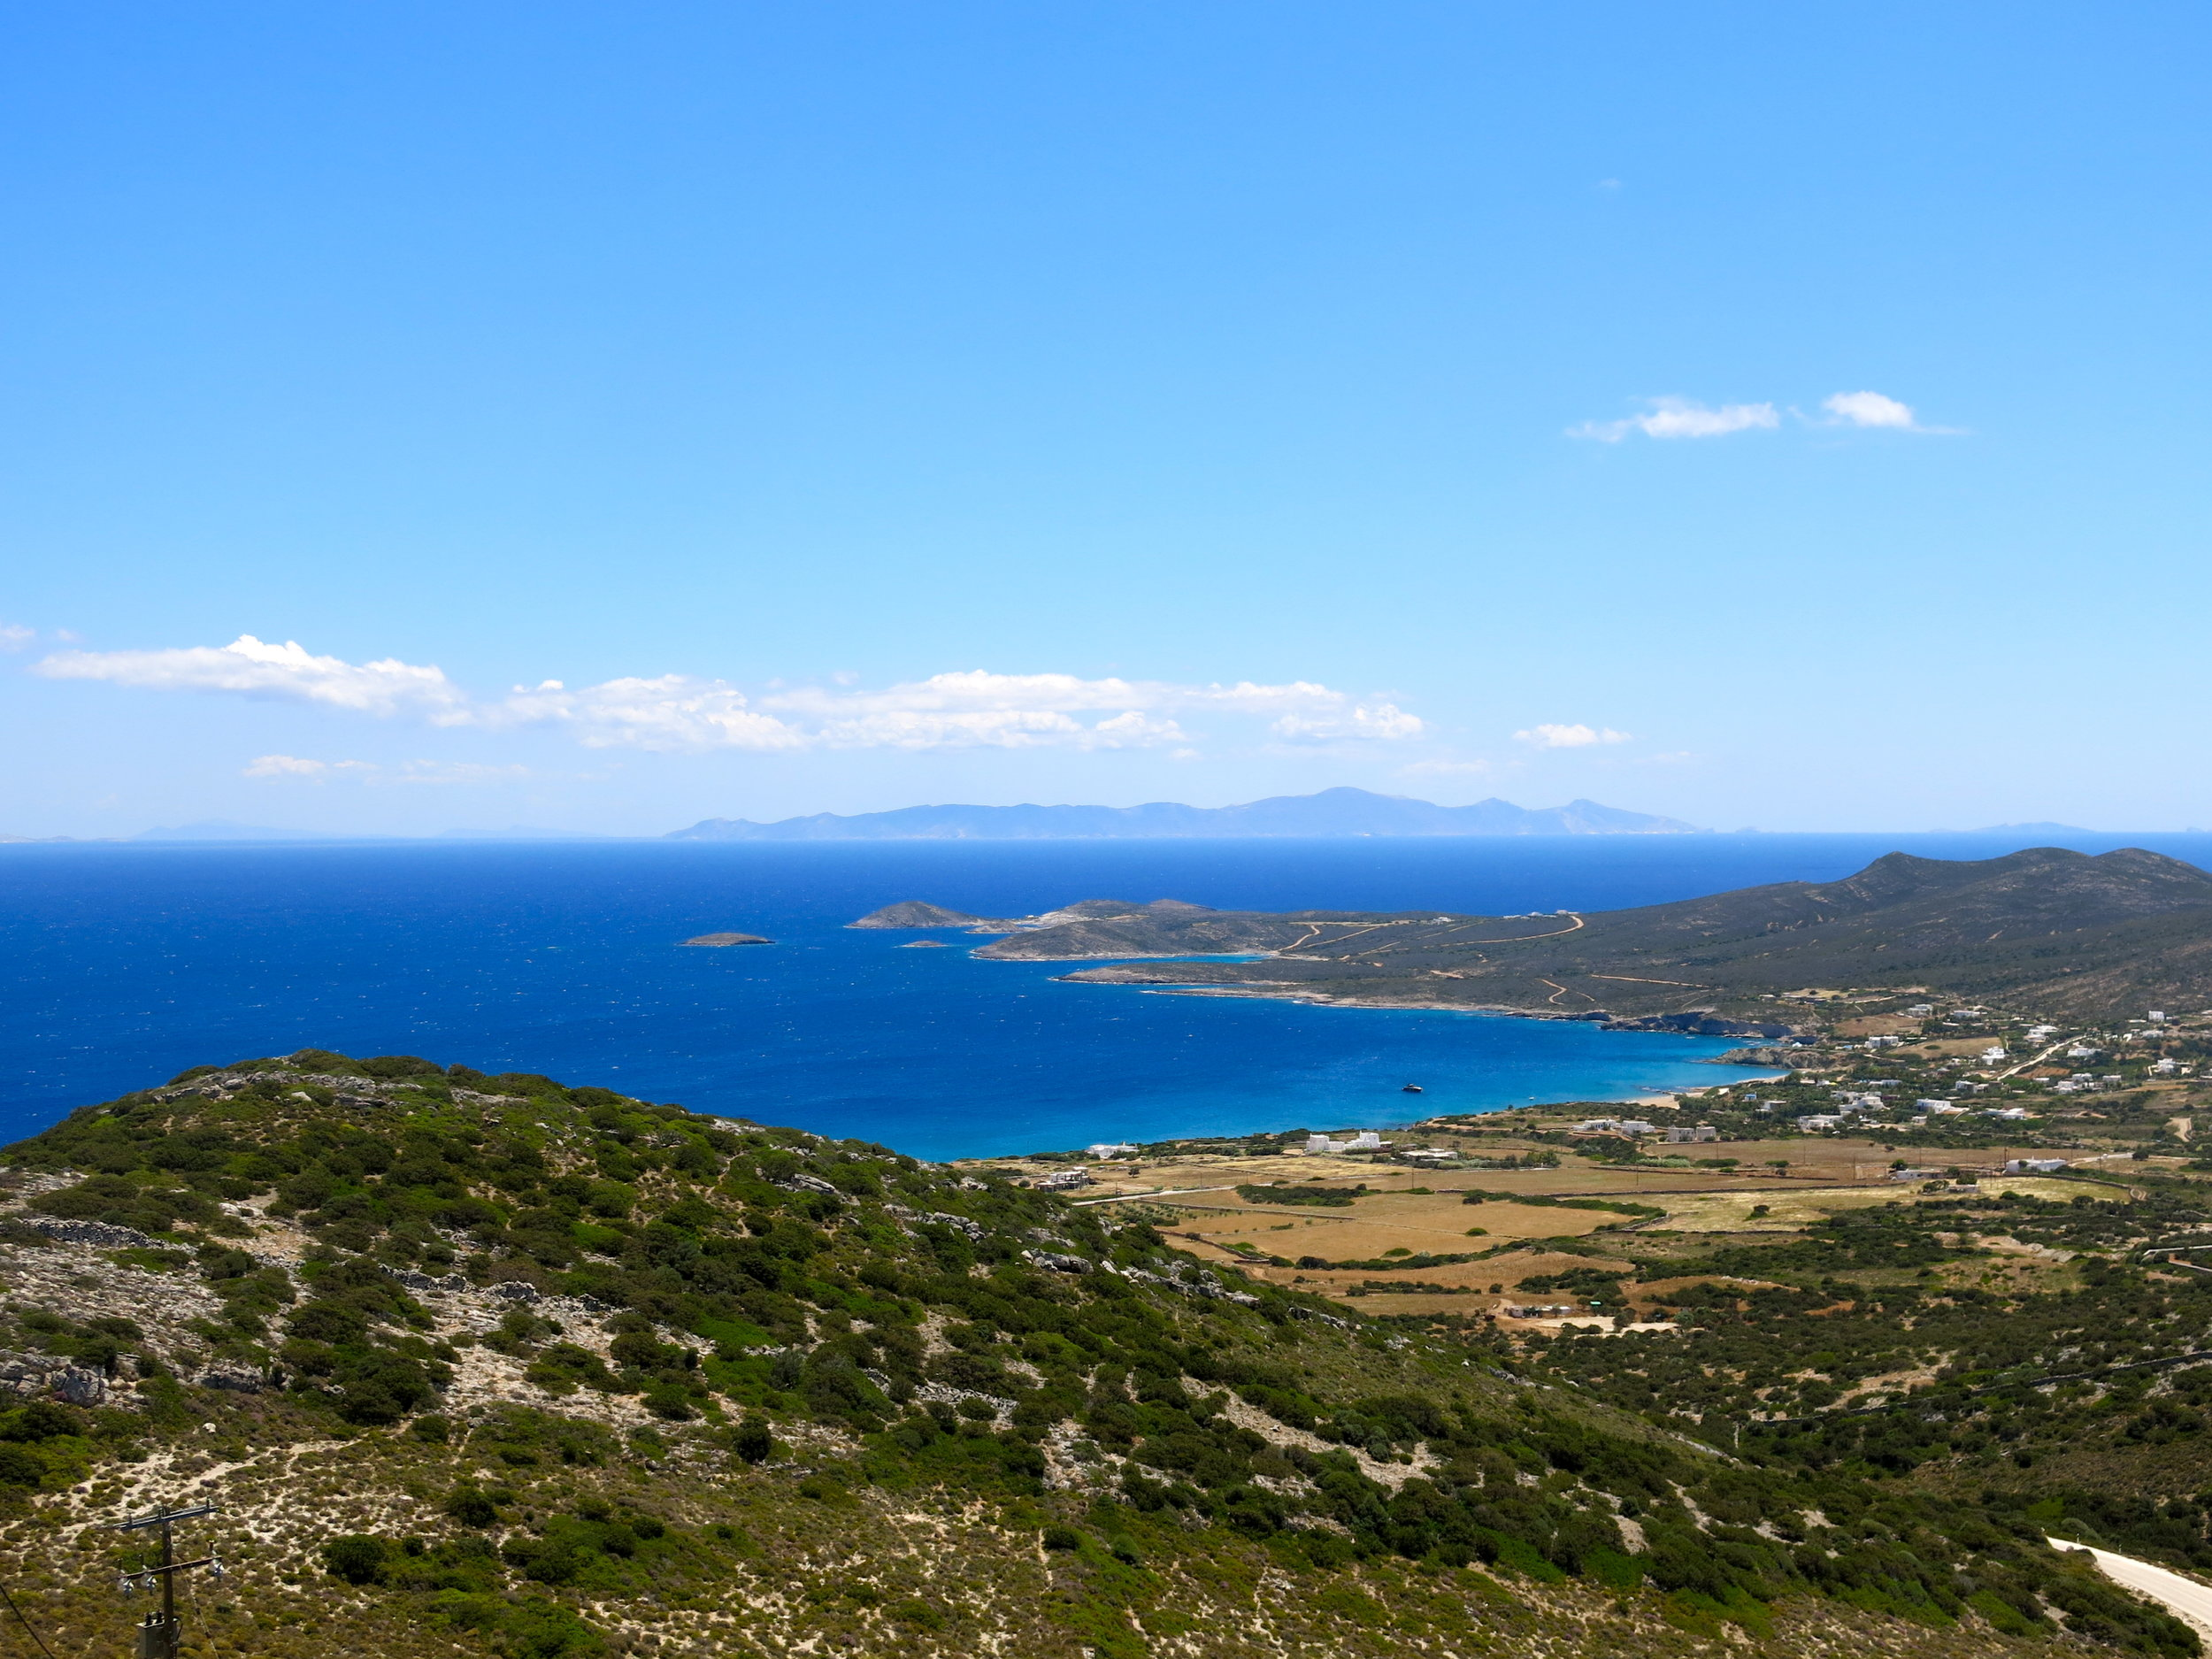 View of Antiparos from the entrance of the Caves